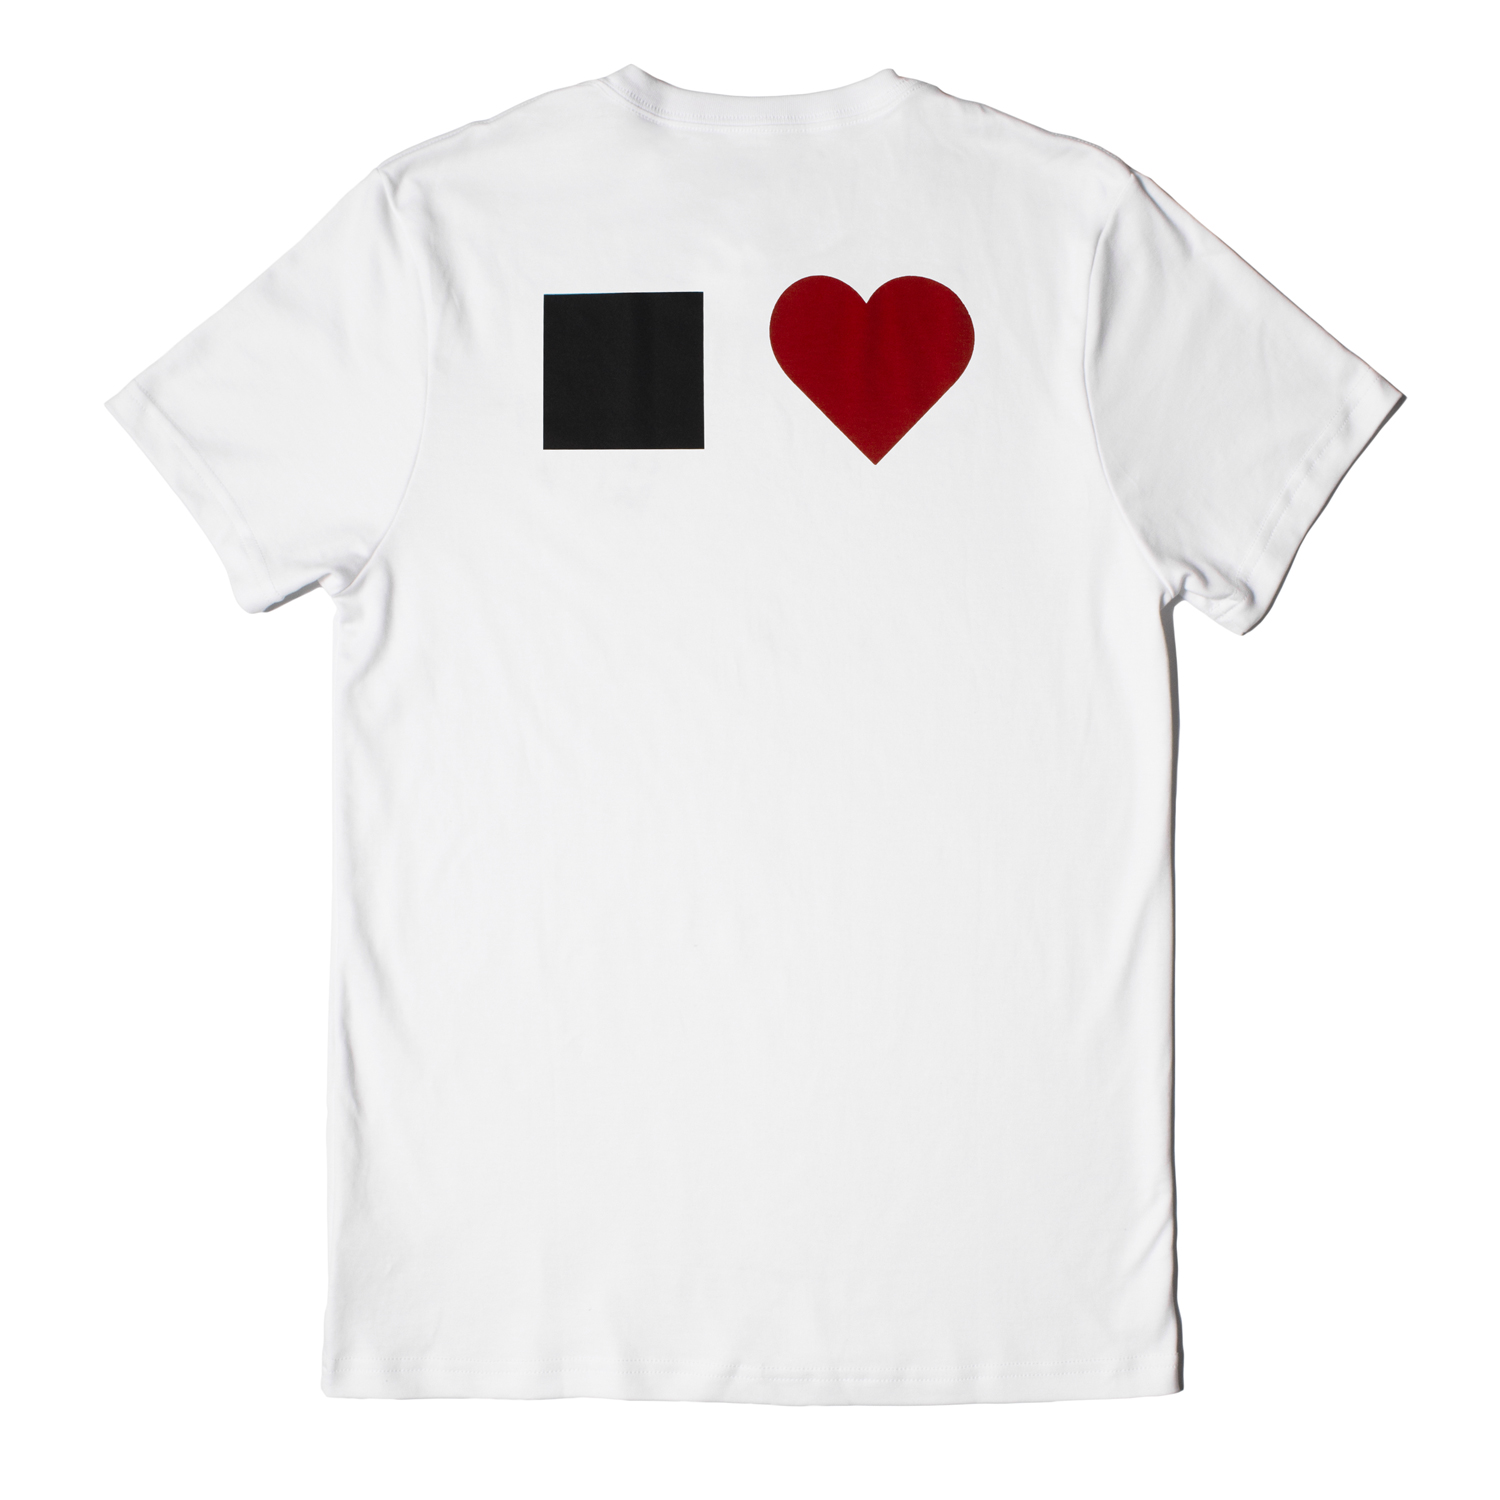 IDONTMIND-Square-Heart-Tee-Back-Web.jpg